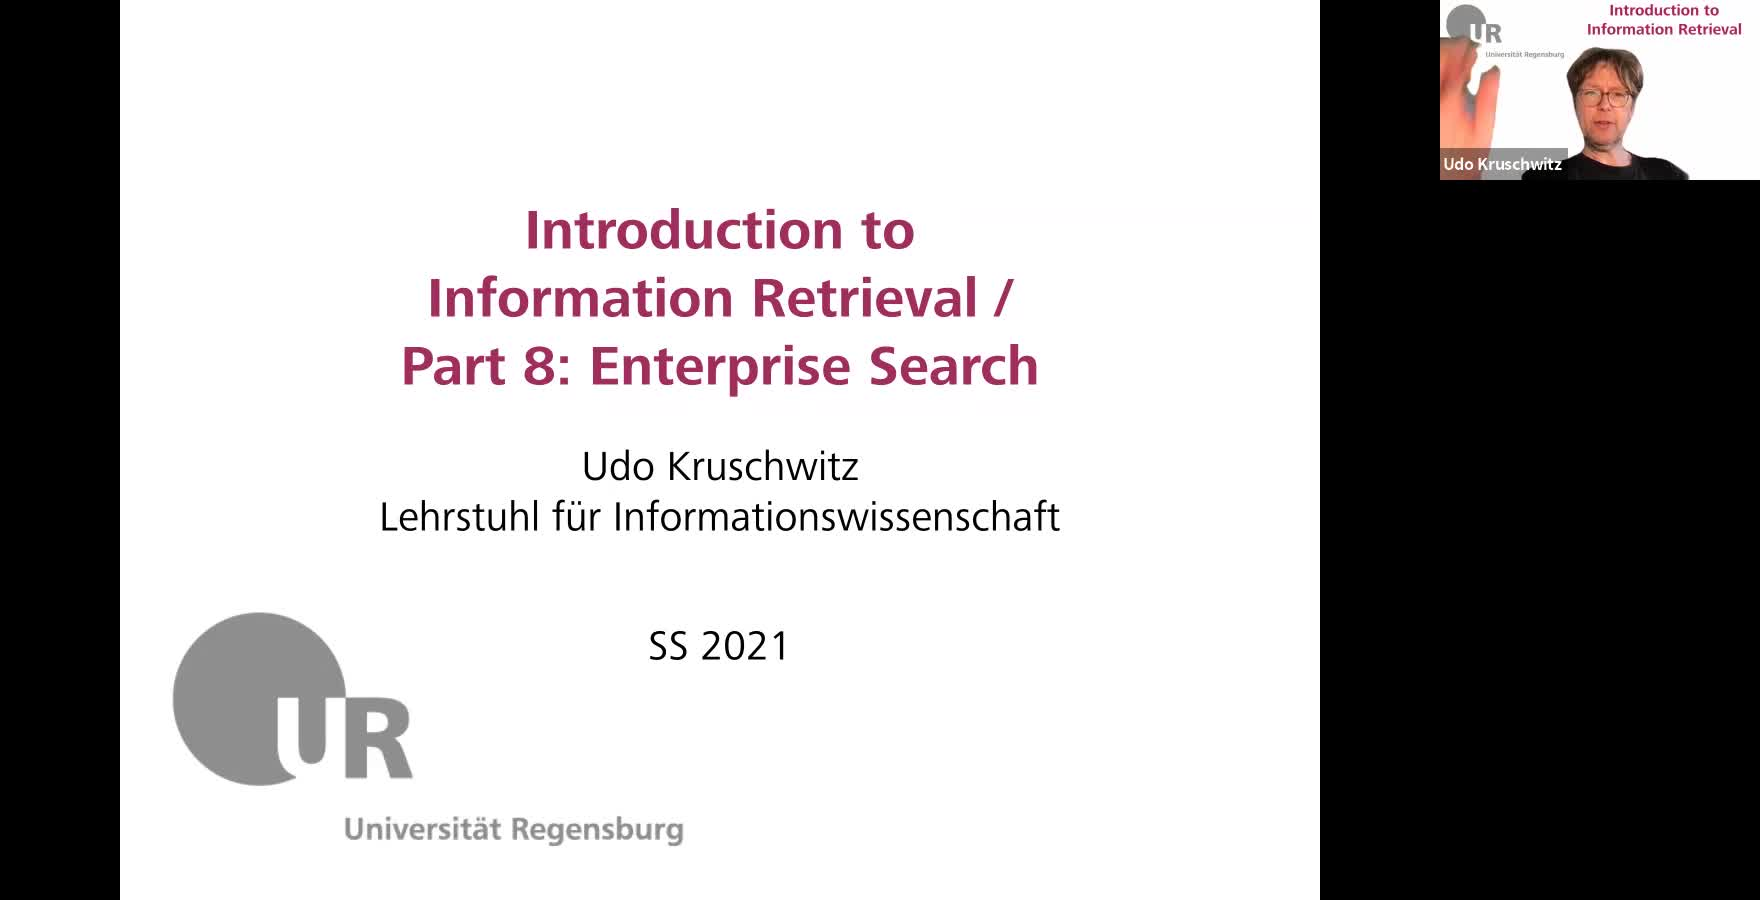 Introduction to Information Retrieval - Lecture 8 (Enterprise search)